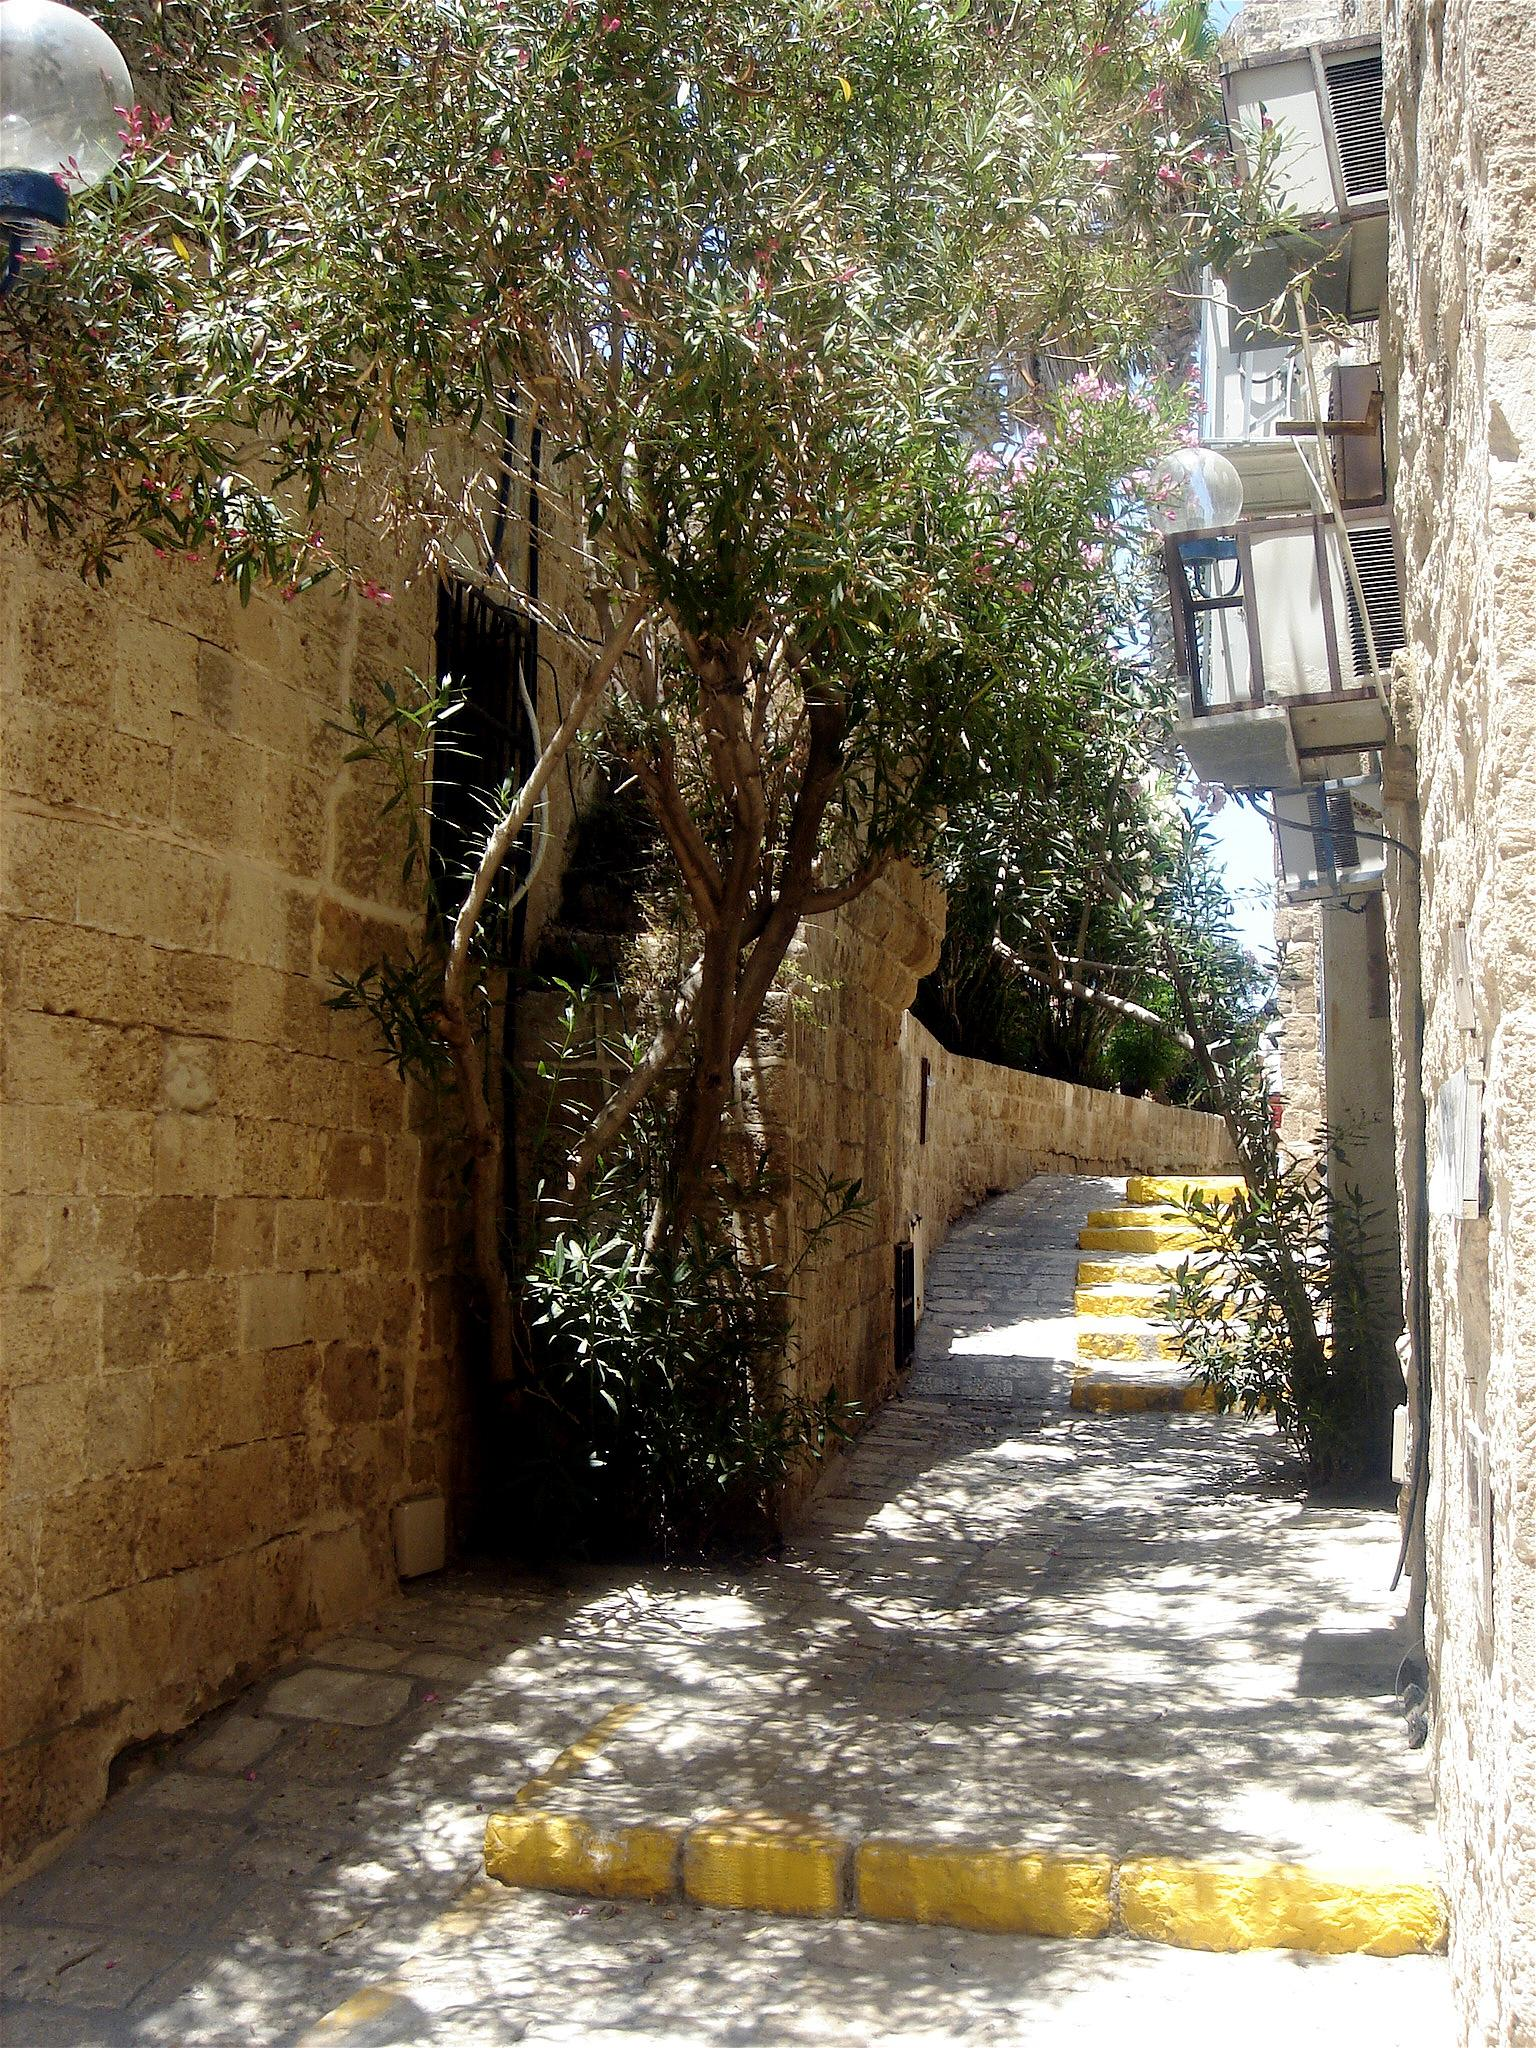 Jaffa - يافا : Inside the renovated old city #2